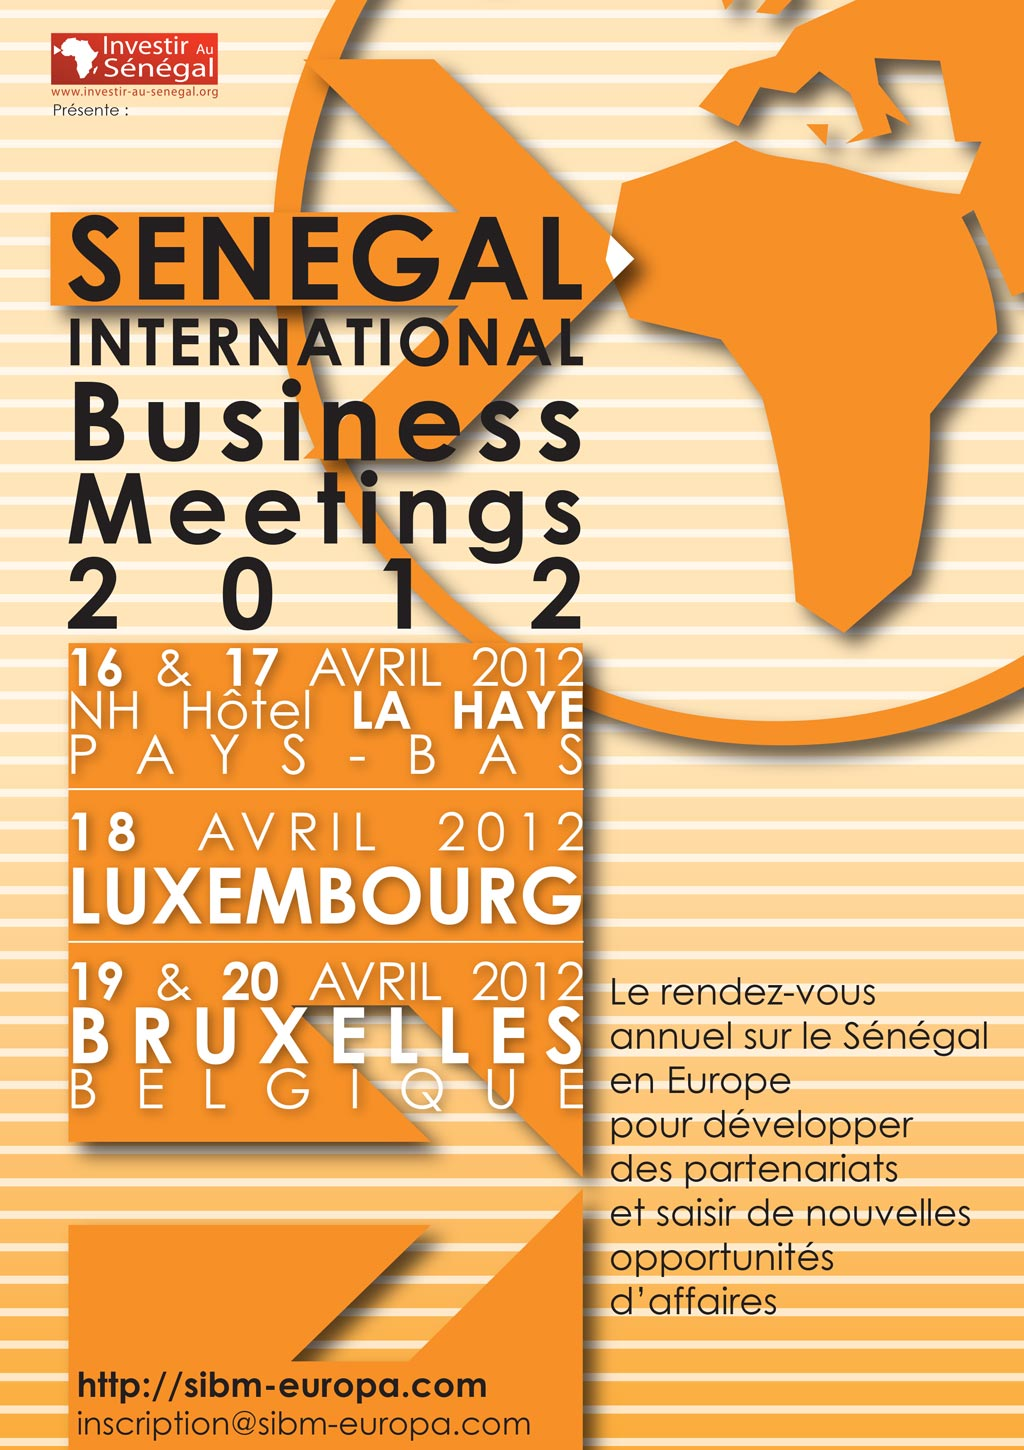 Sénégal International business meeting